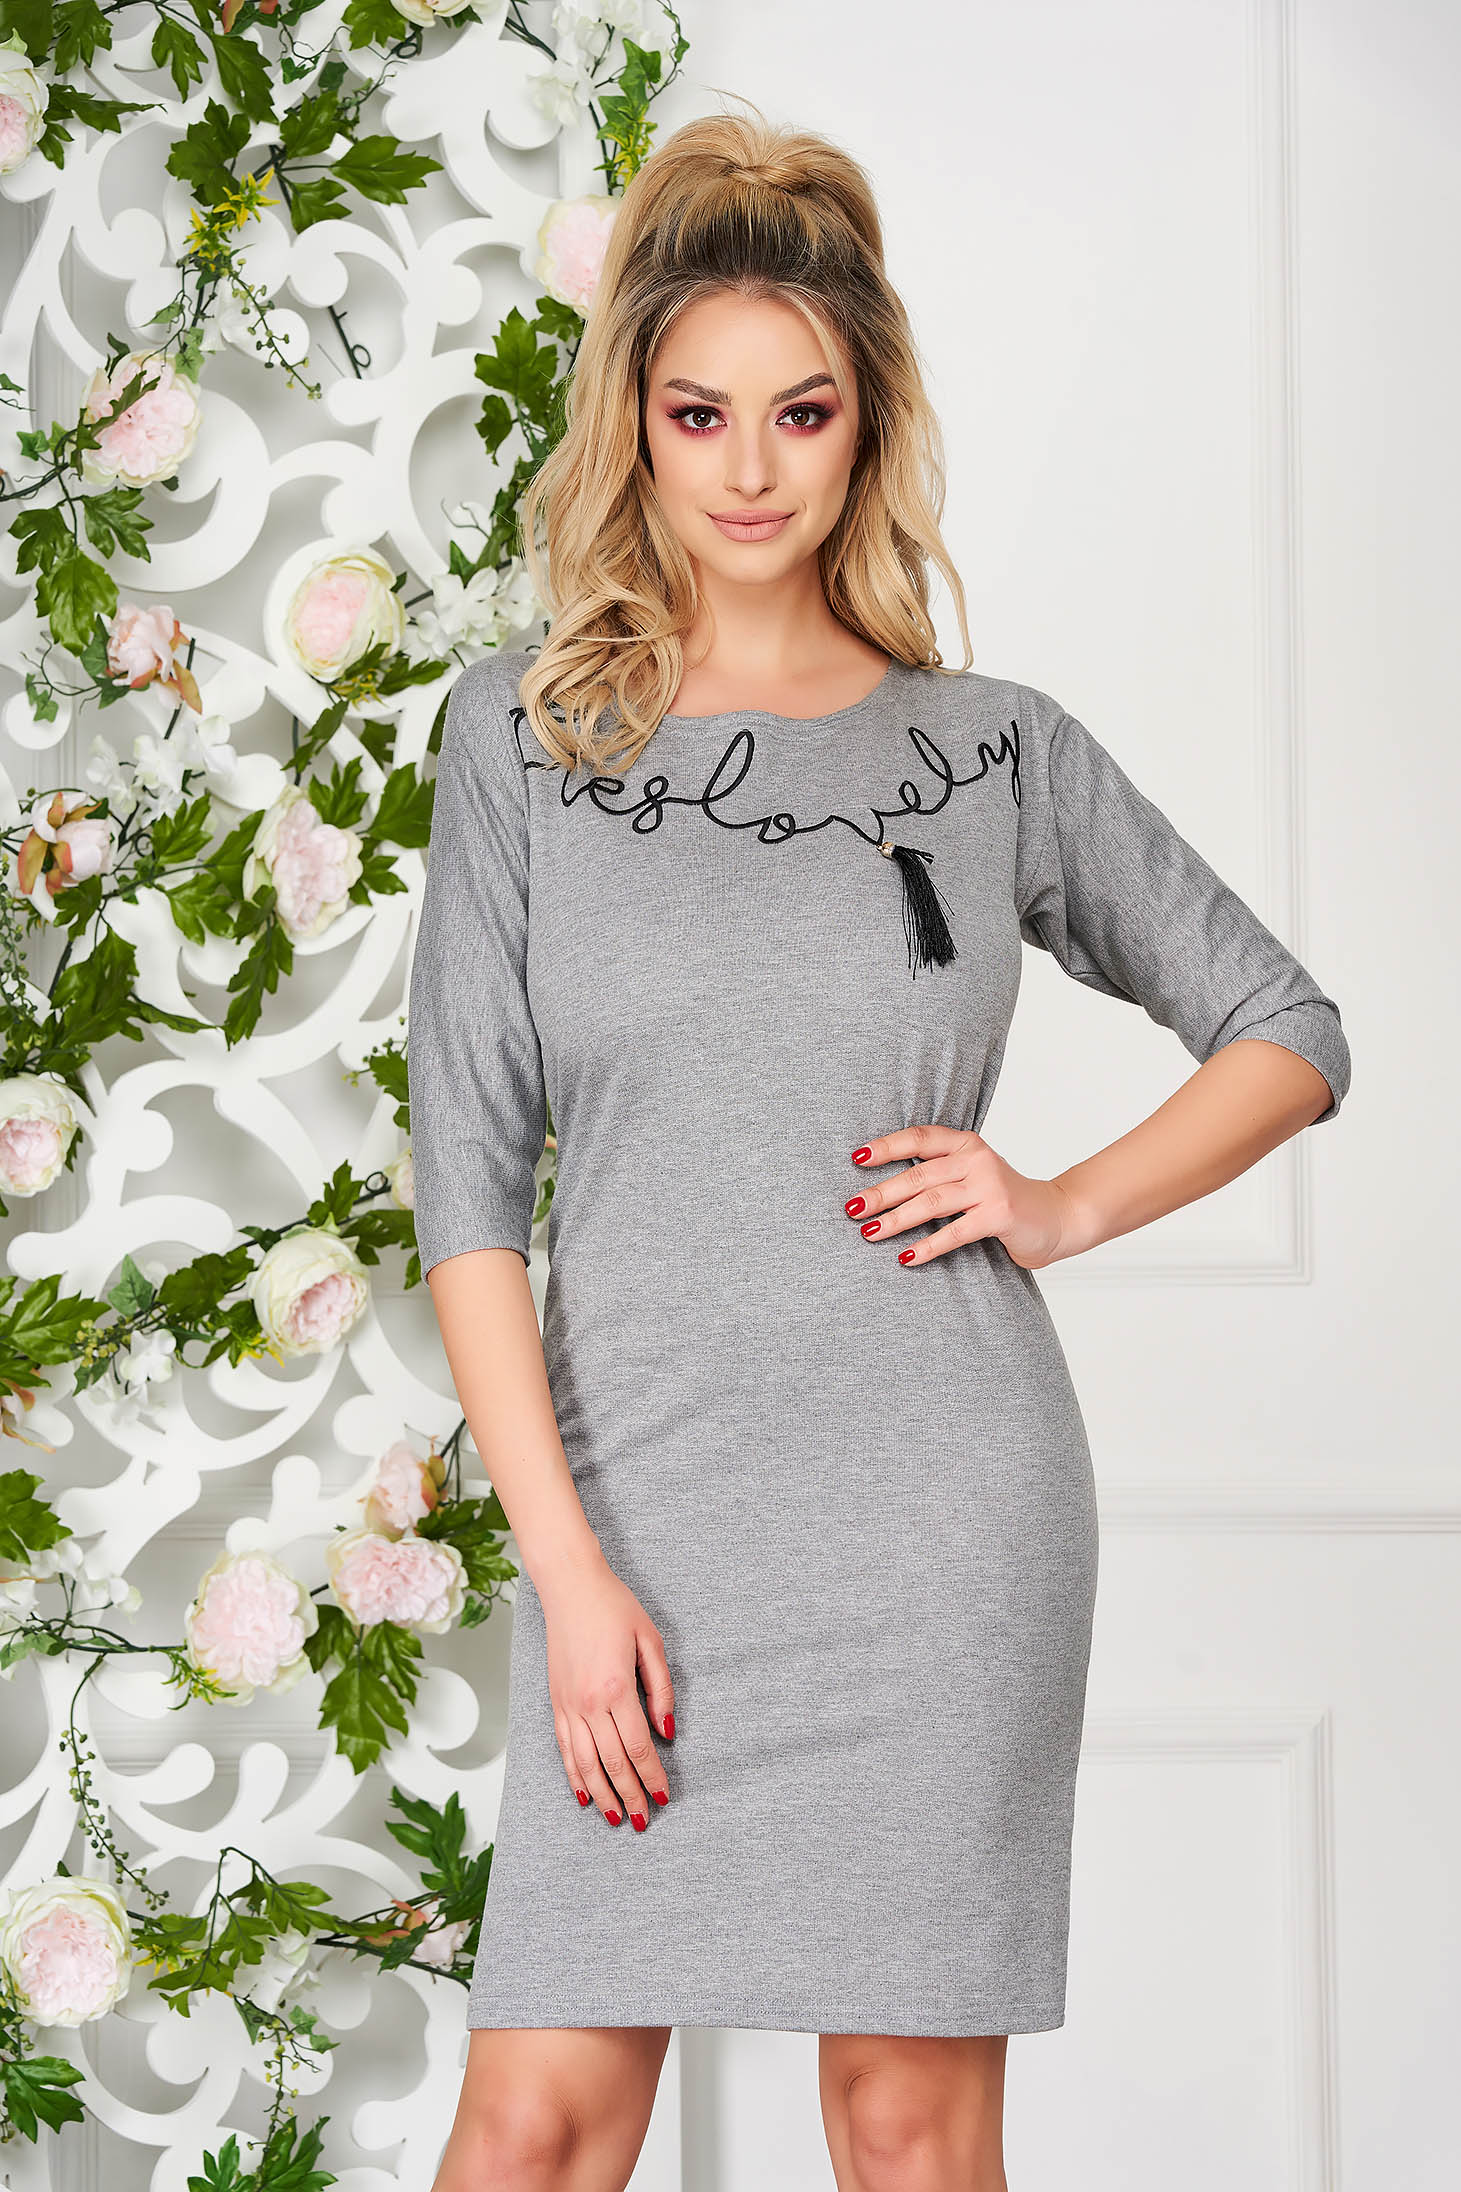 StarShinerS grey dress daily with tassels cotton short cut flared cut without clothing with 3/4 sleeves